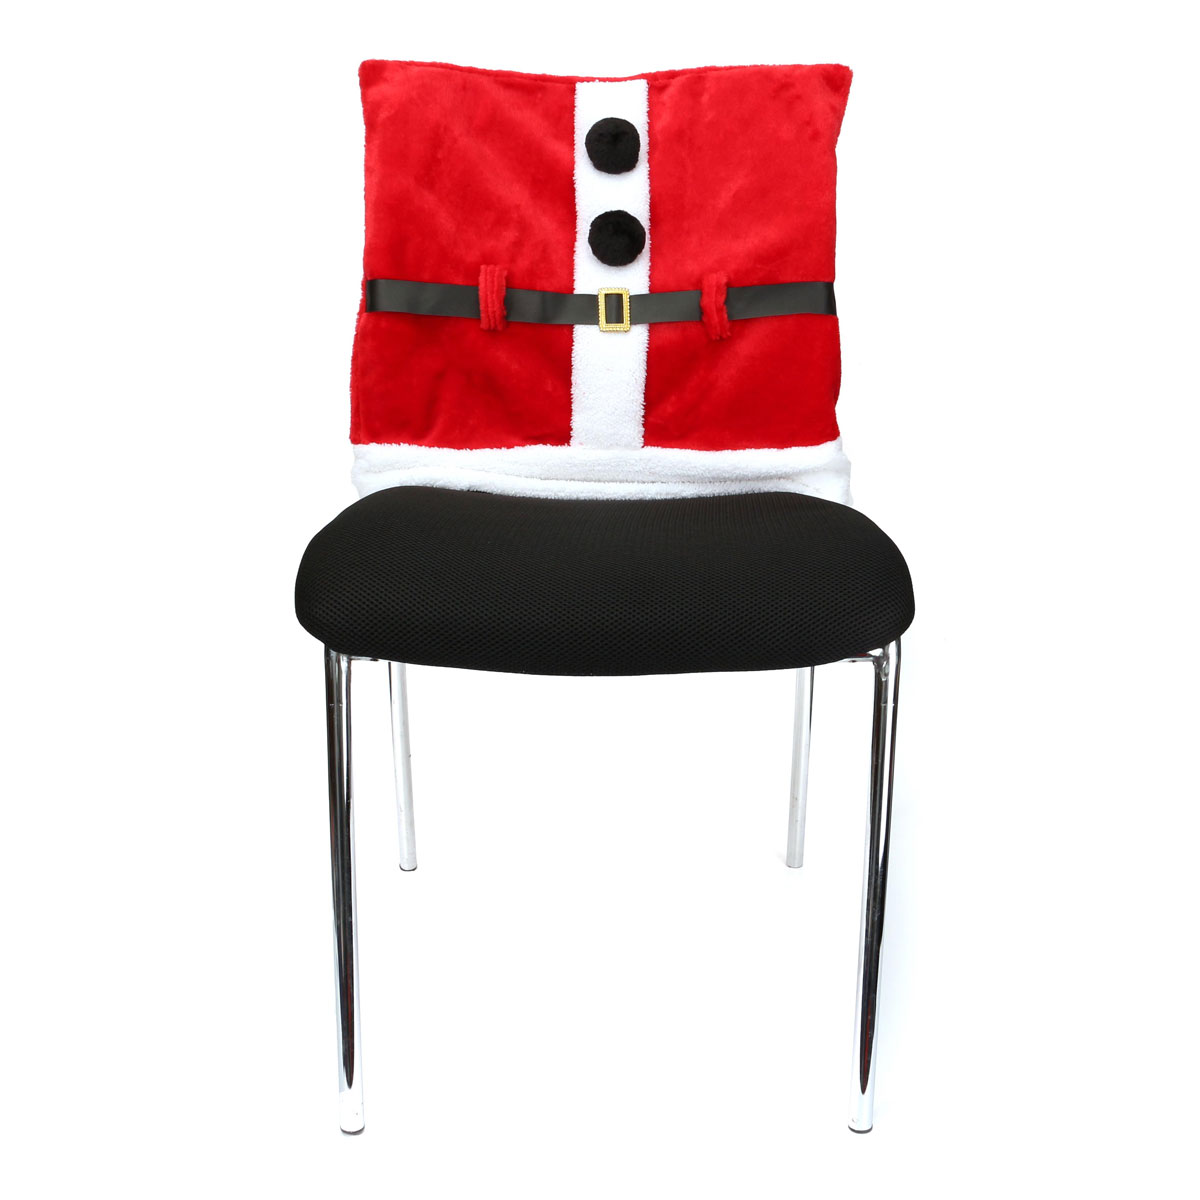 Santa Clause Clothes Suit Chair Back Cover Christmas